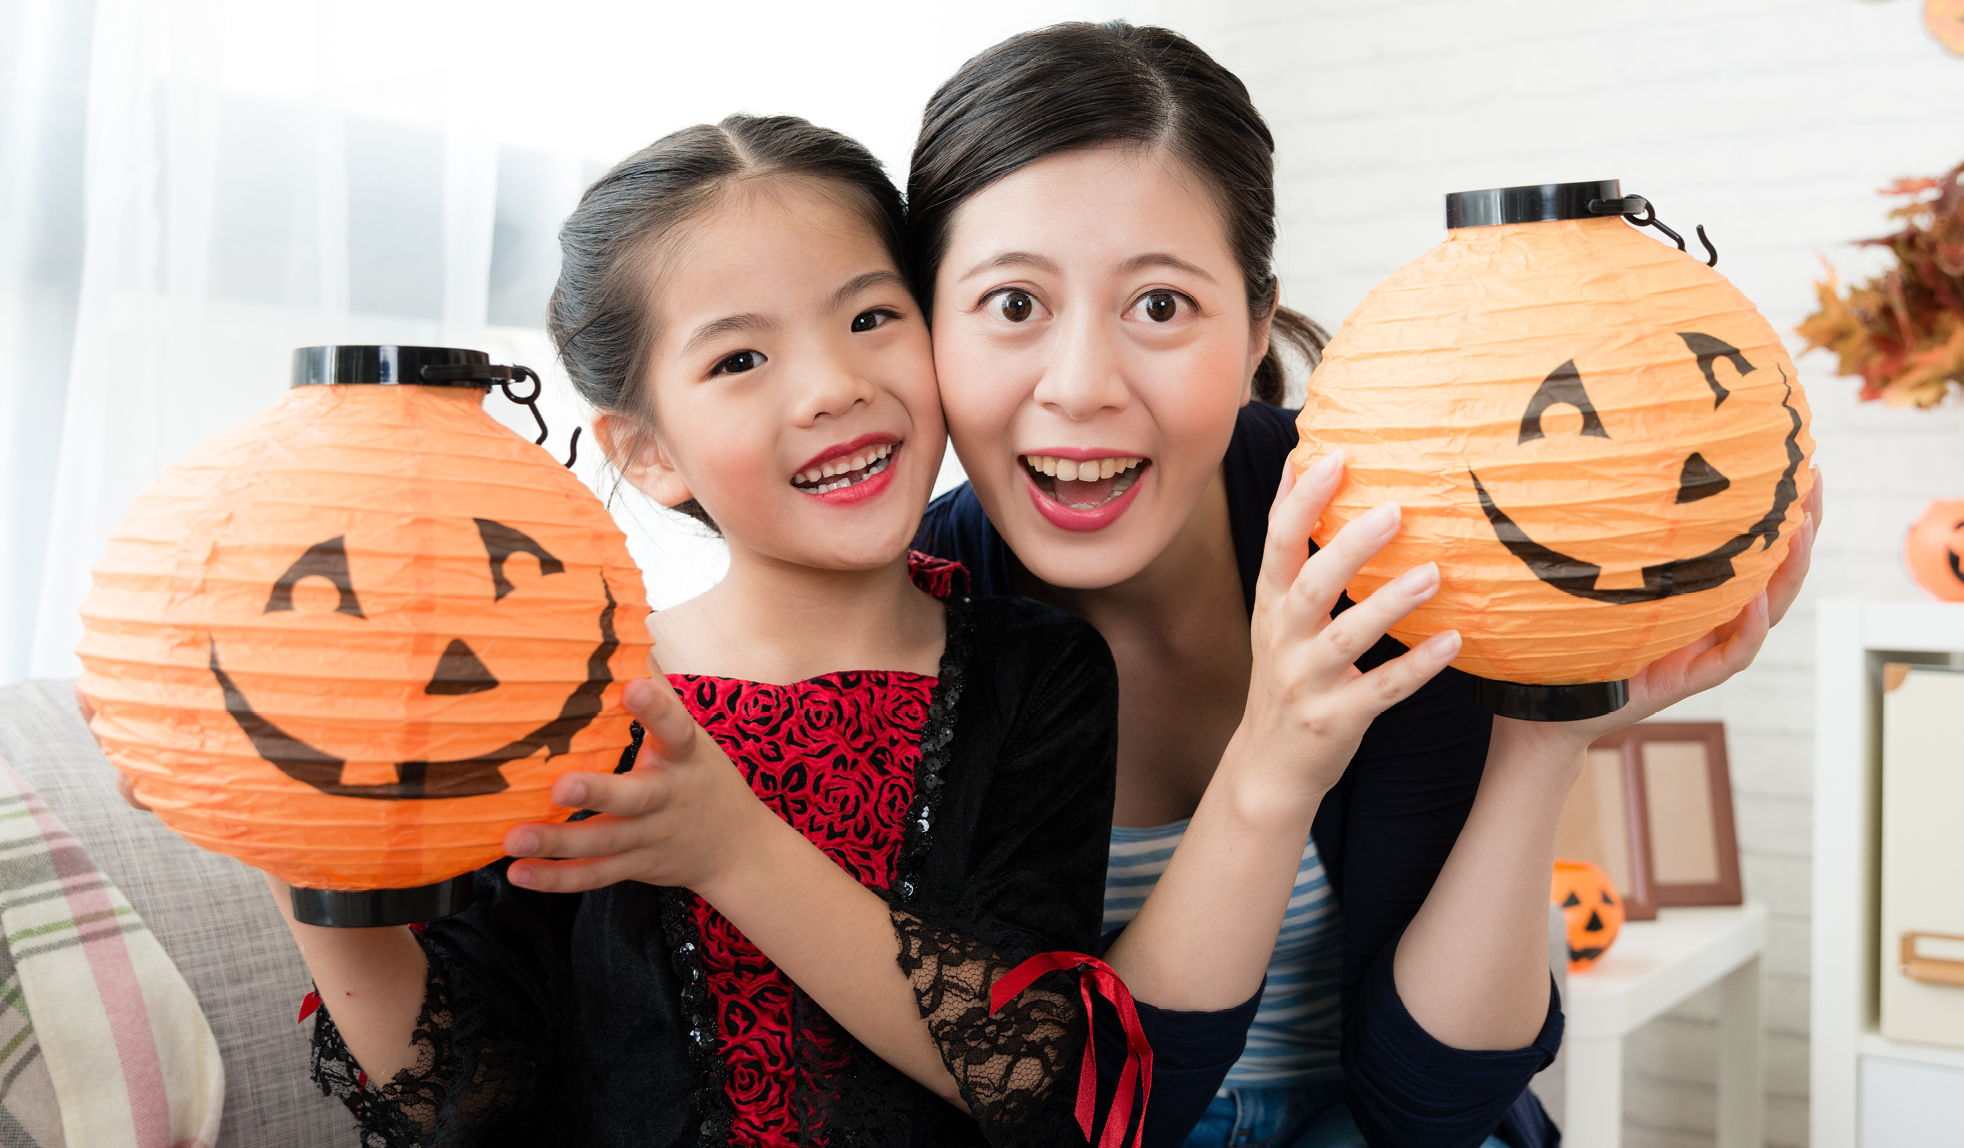 Halloween is coming up and we're ready with spooky stories, frightful flicks, and more!